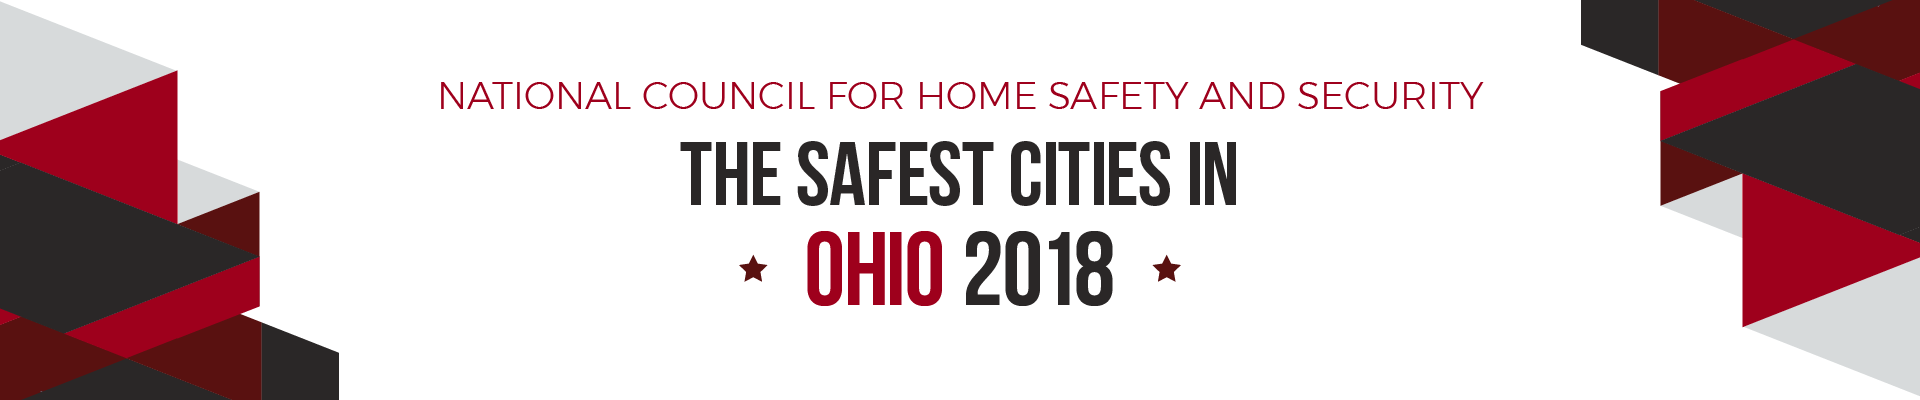 safe cities ohio 2018